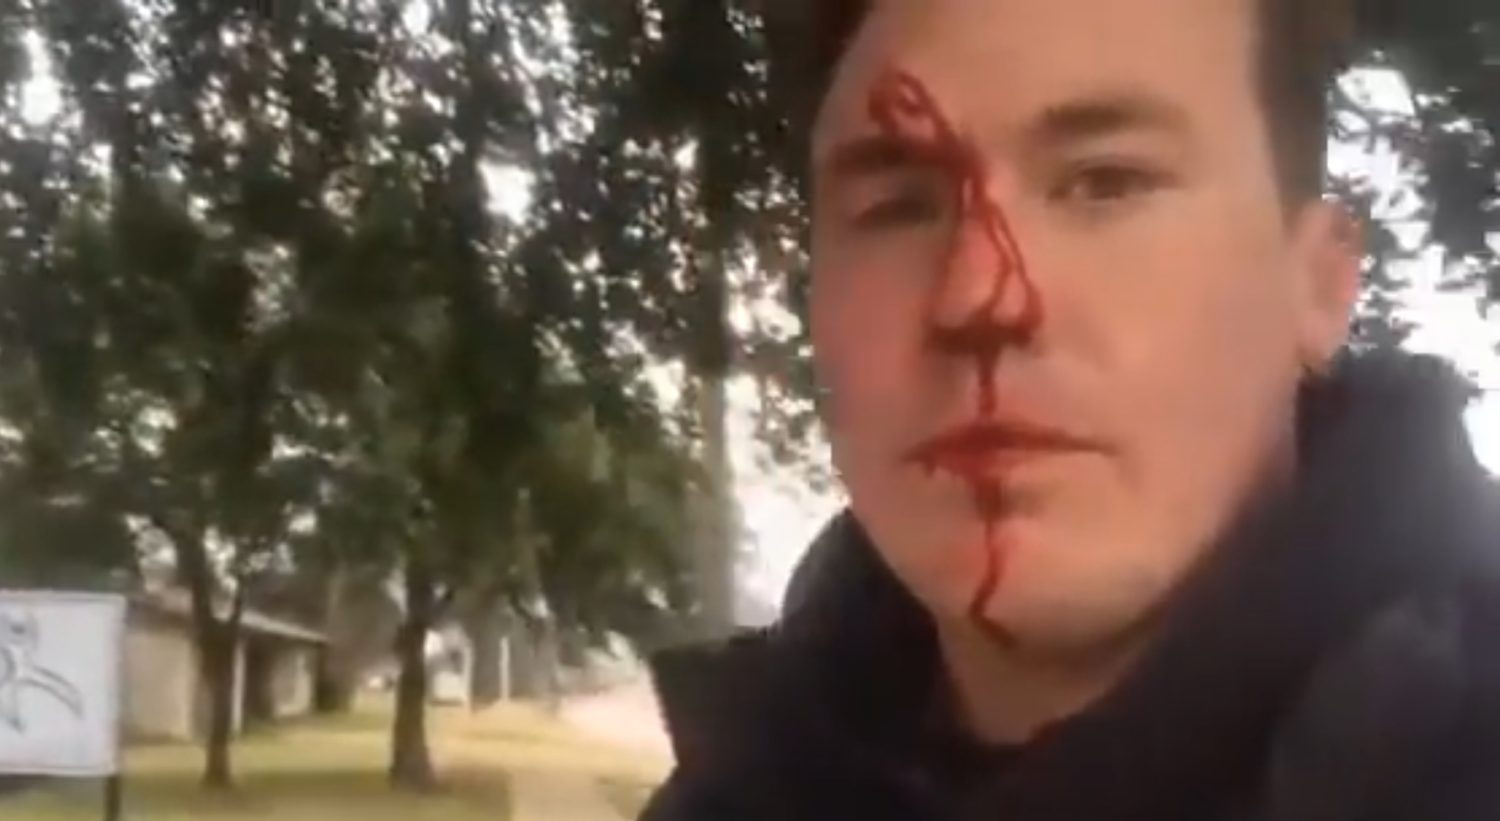 Report: Video Catches Man Beating Christian Bloody Outside Abortion Clinic